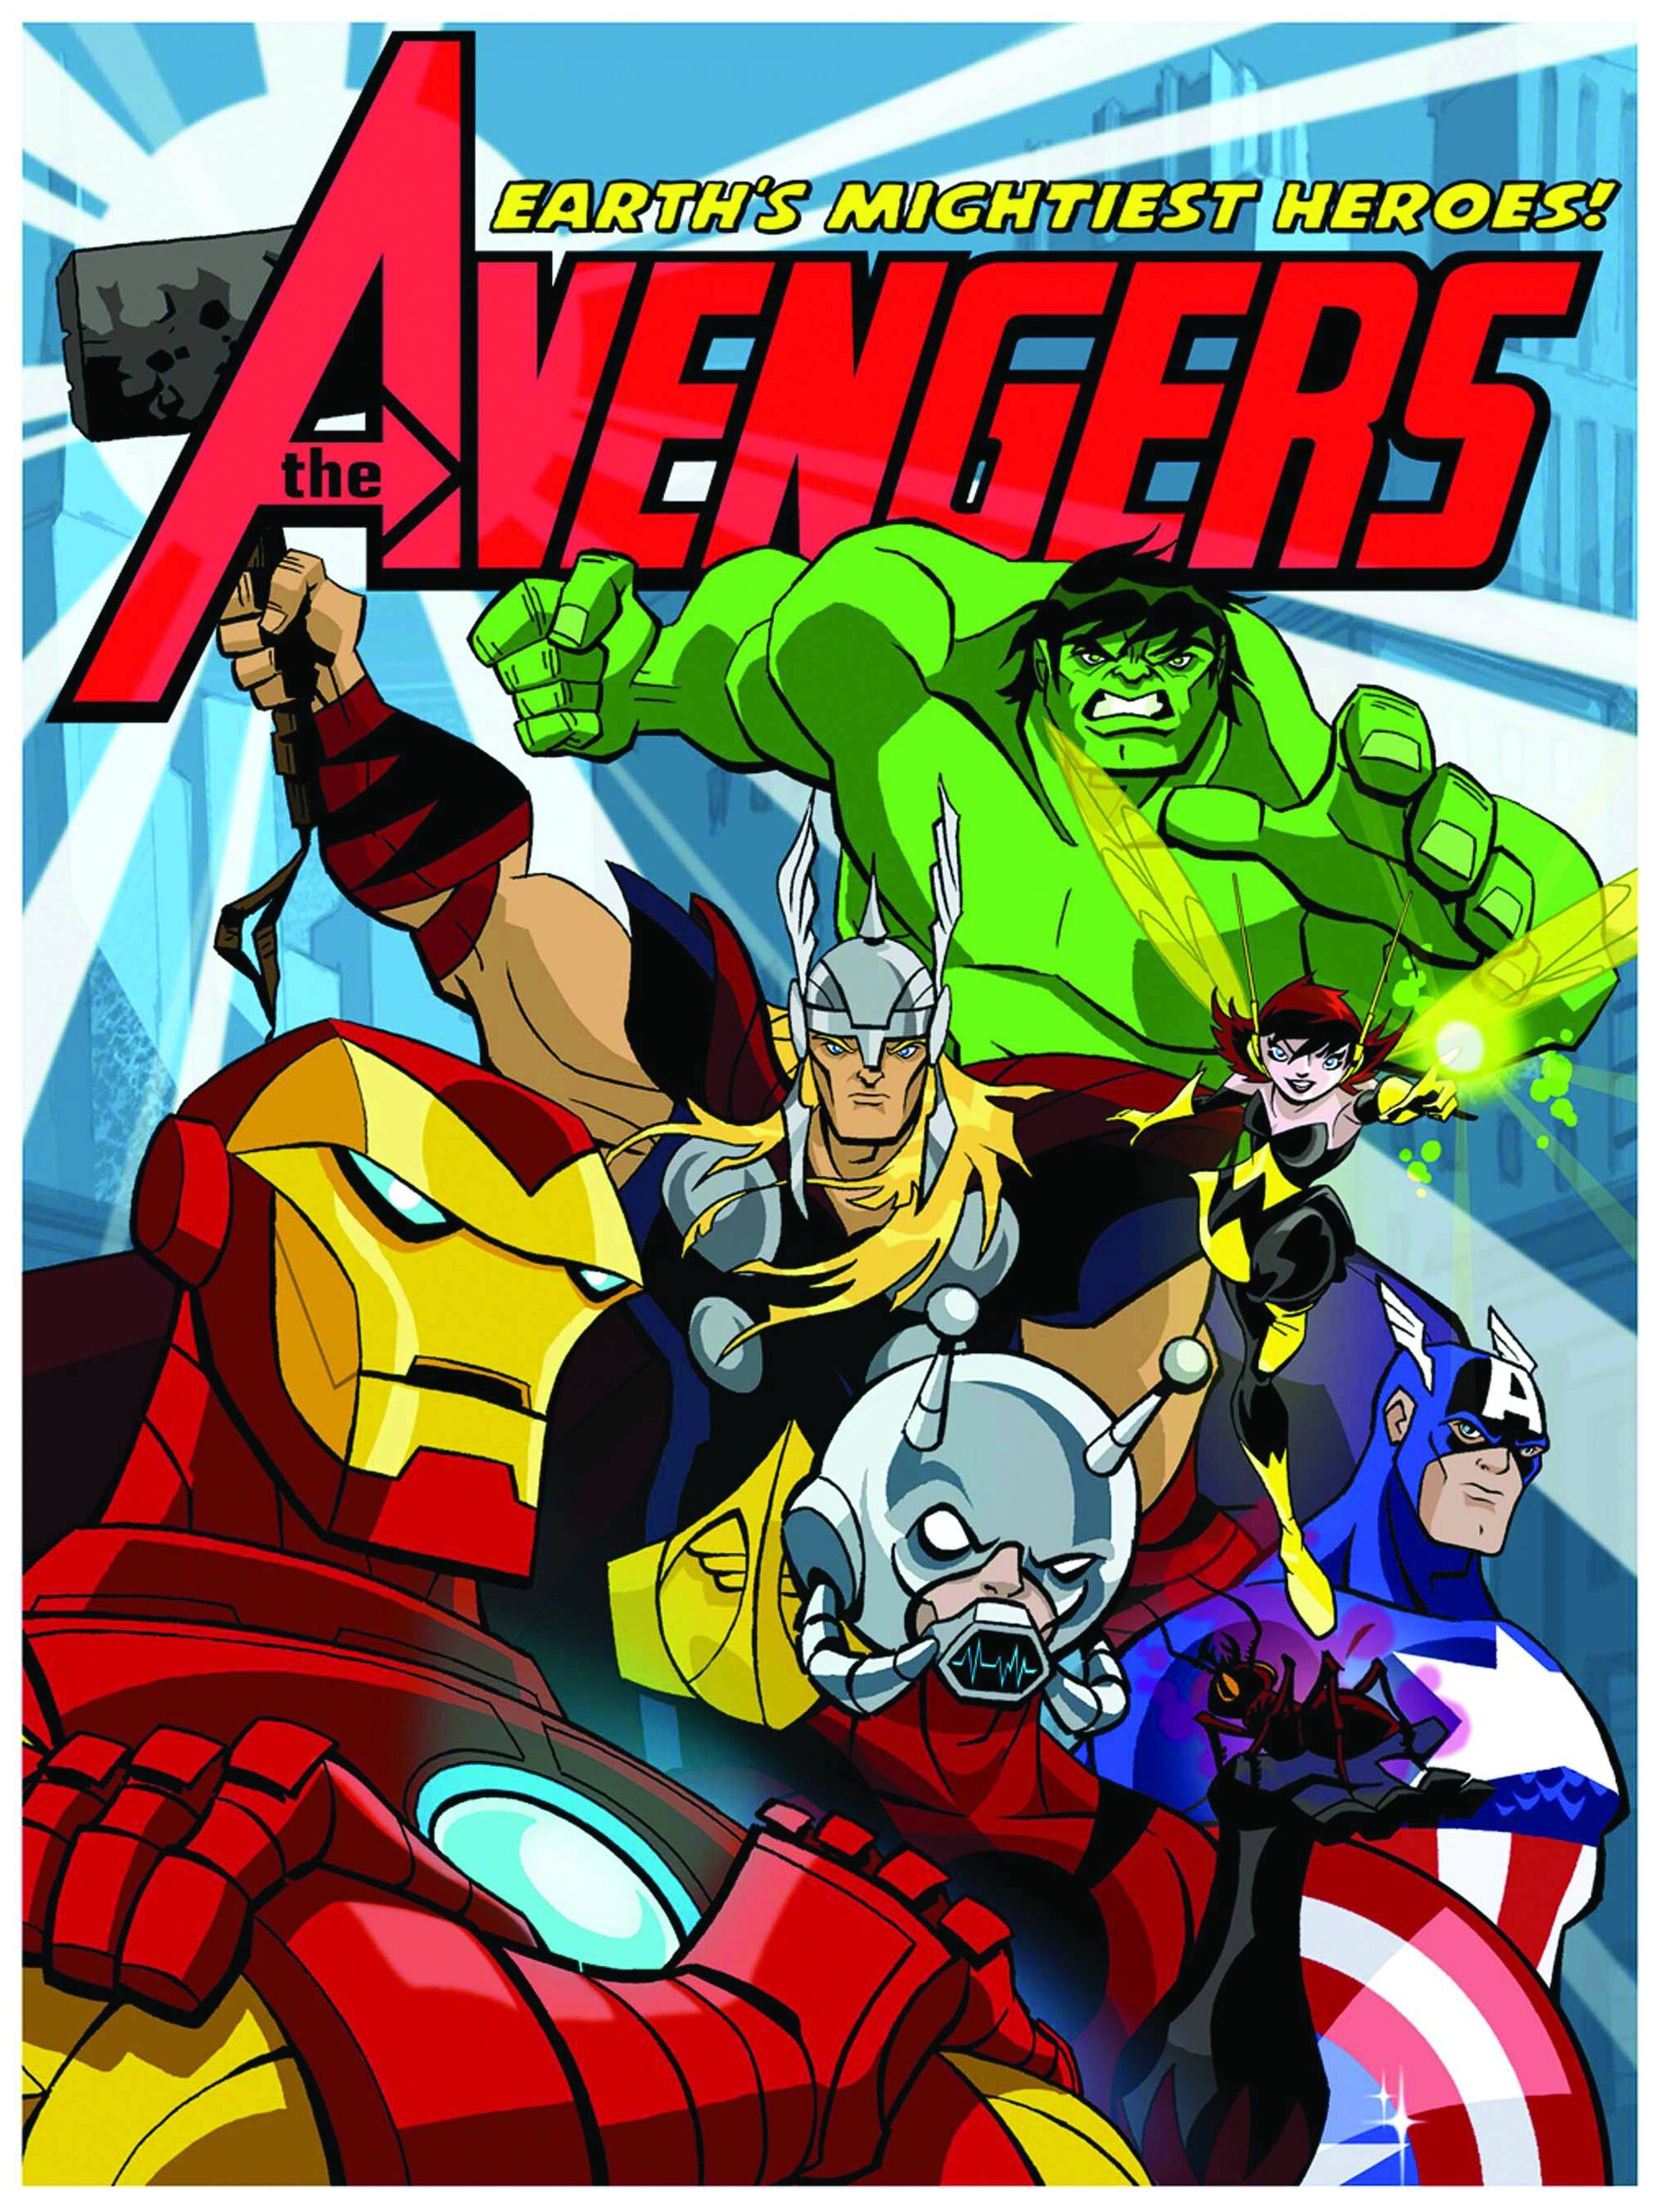 Avengers earth 39 s mightiest heroes animated series marvel database fandom powered by wikia - Heros avengers ...